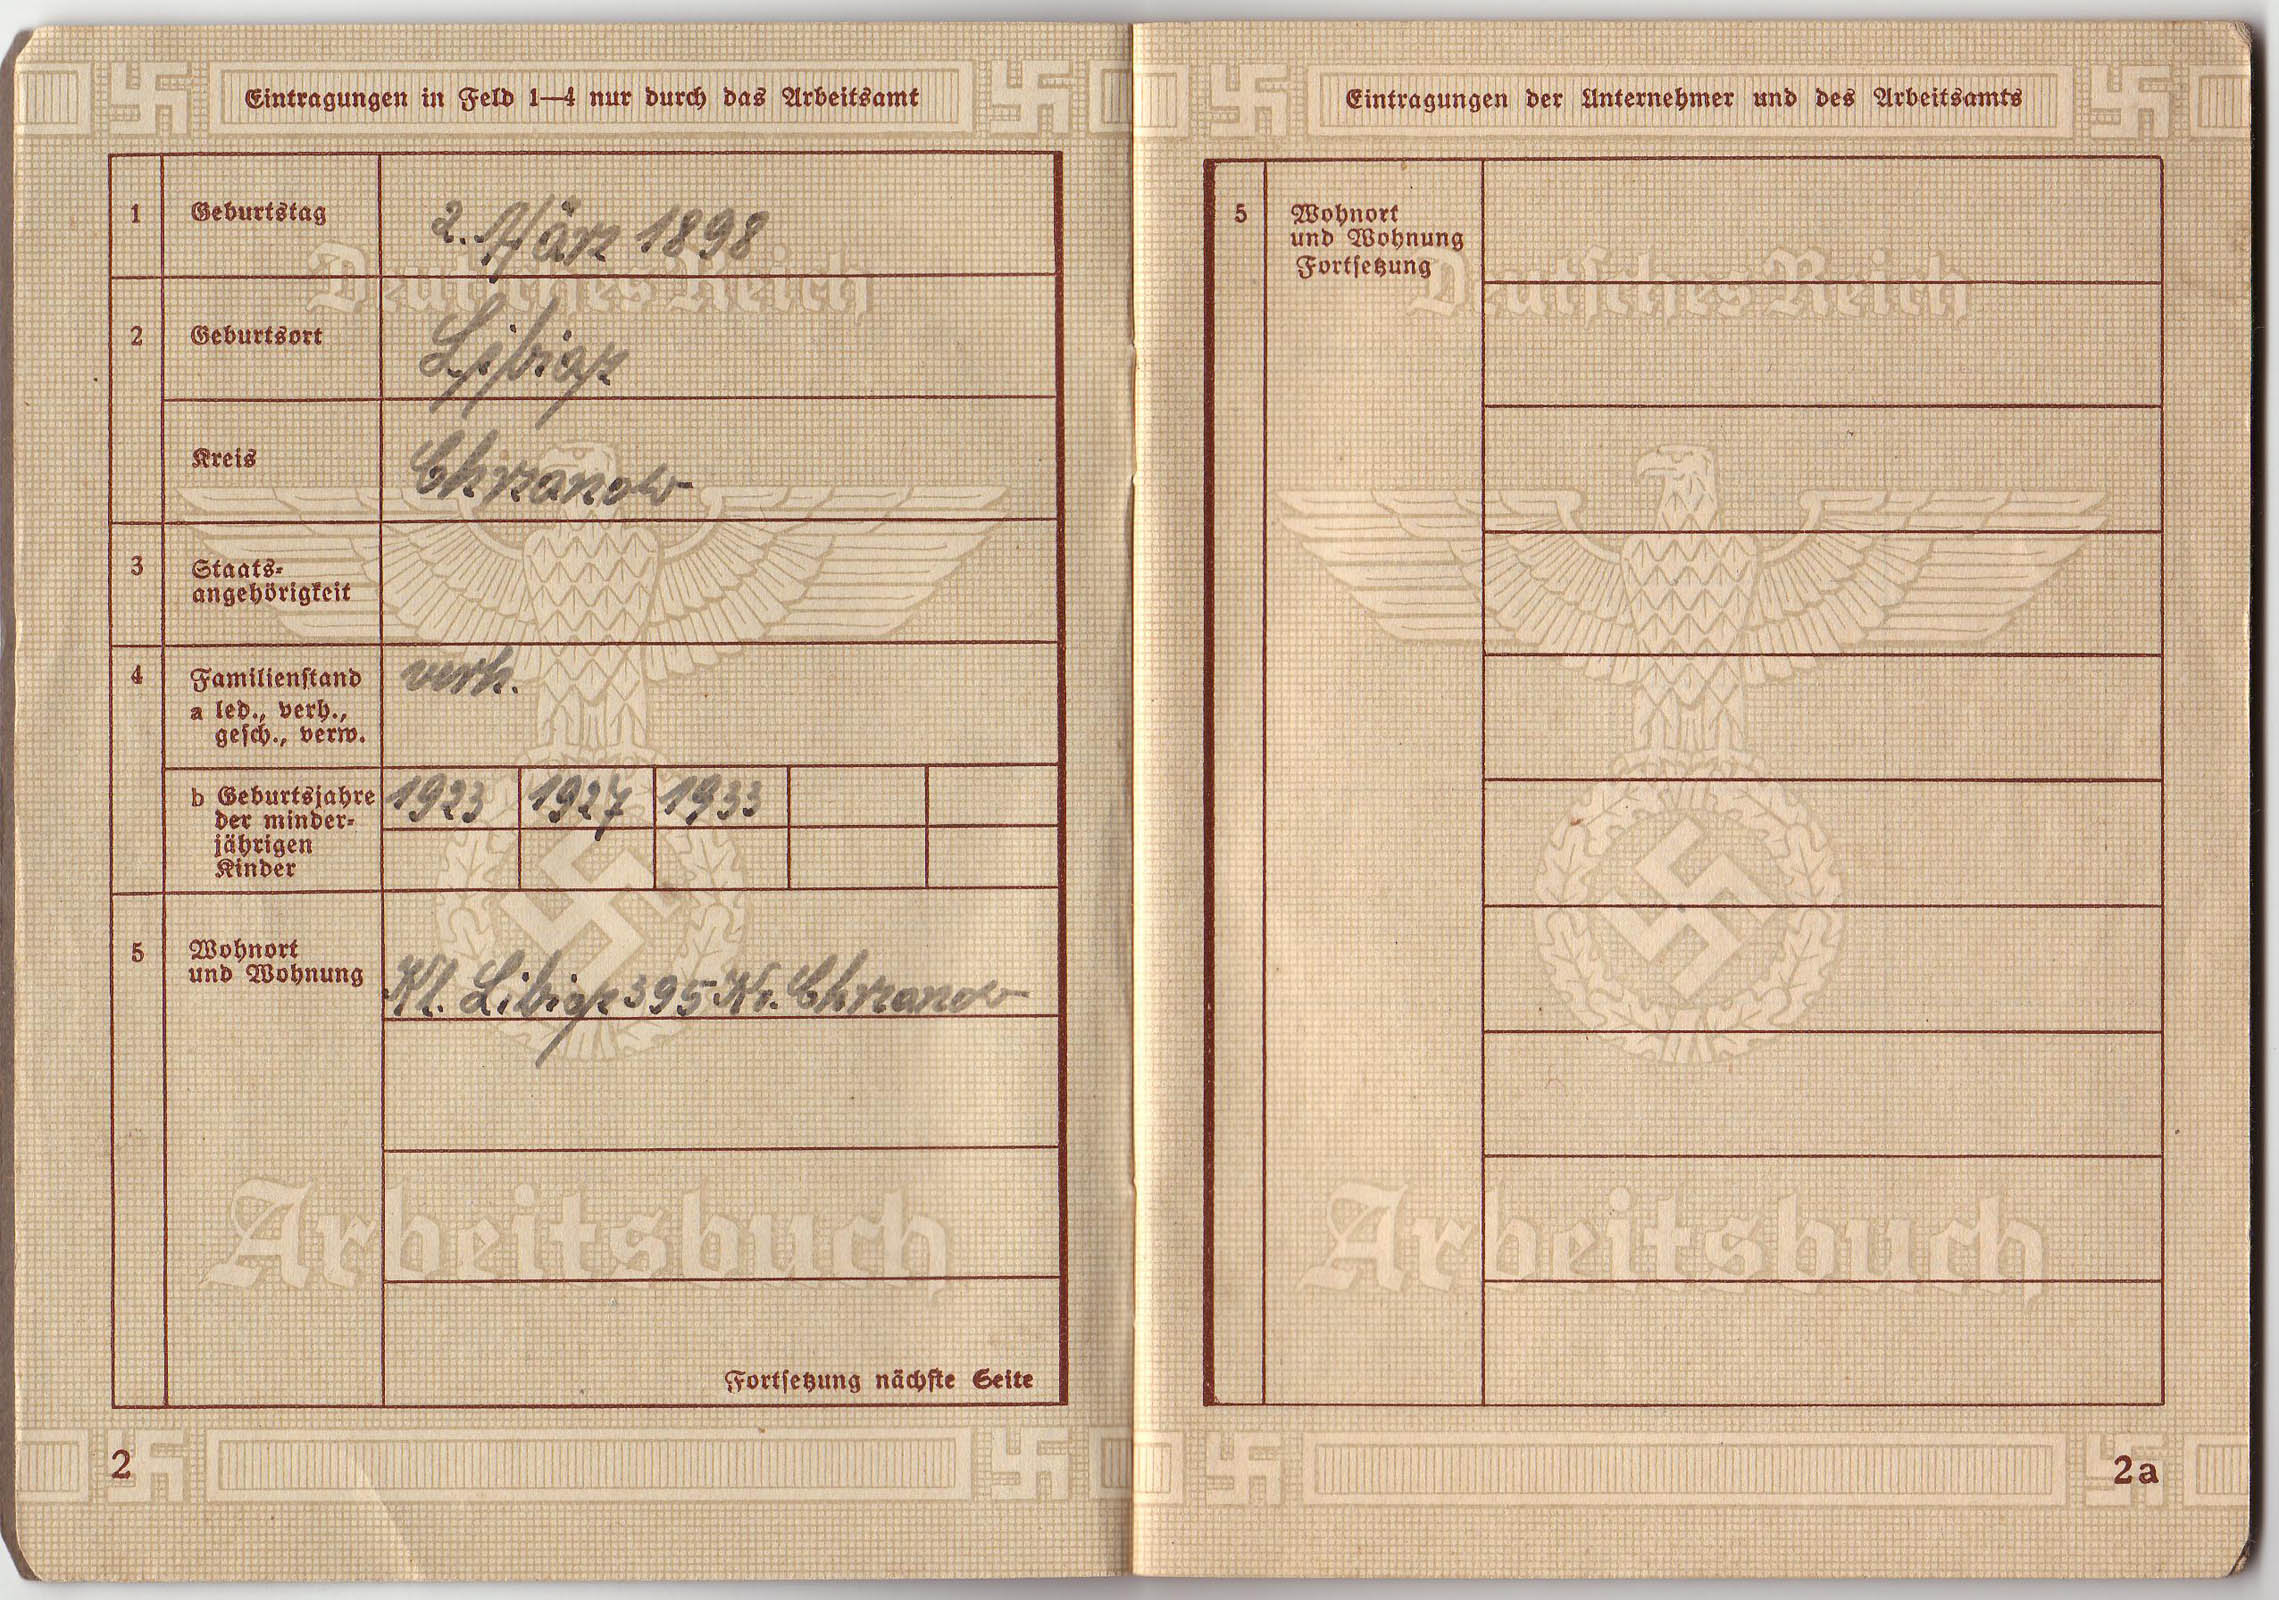 Arbeitsbuch of civilian worker from Janinagrube 3